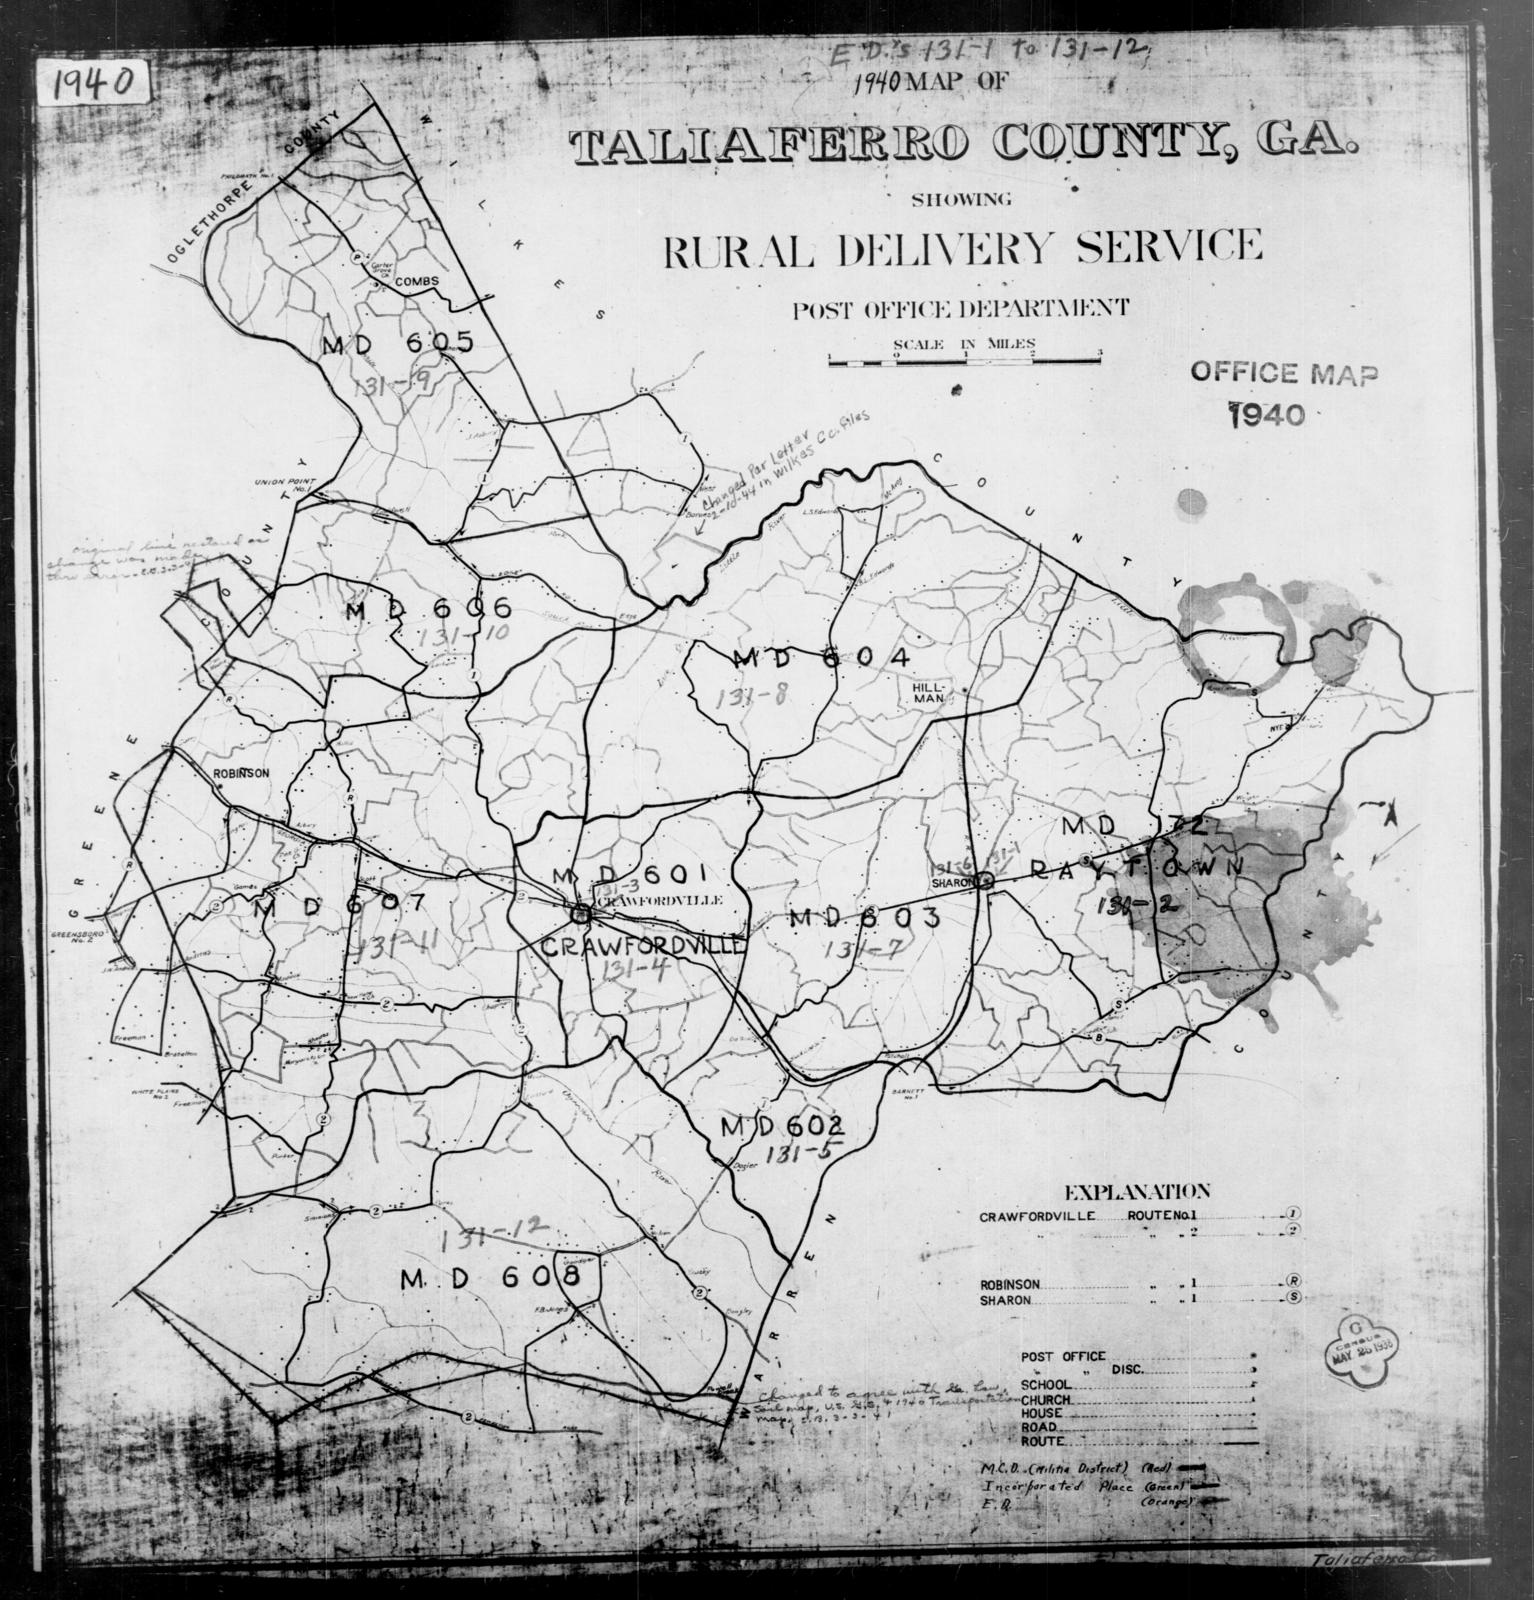 Map Of Georgia By County.1940 Census Enumeration District Maps Georgia Taliaferro County